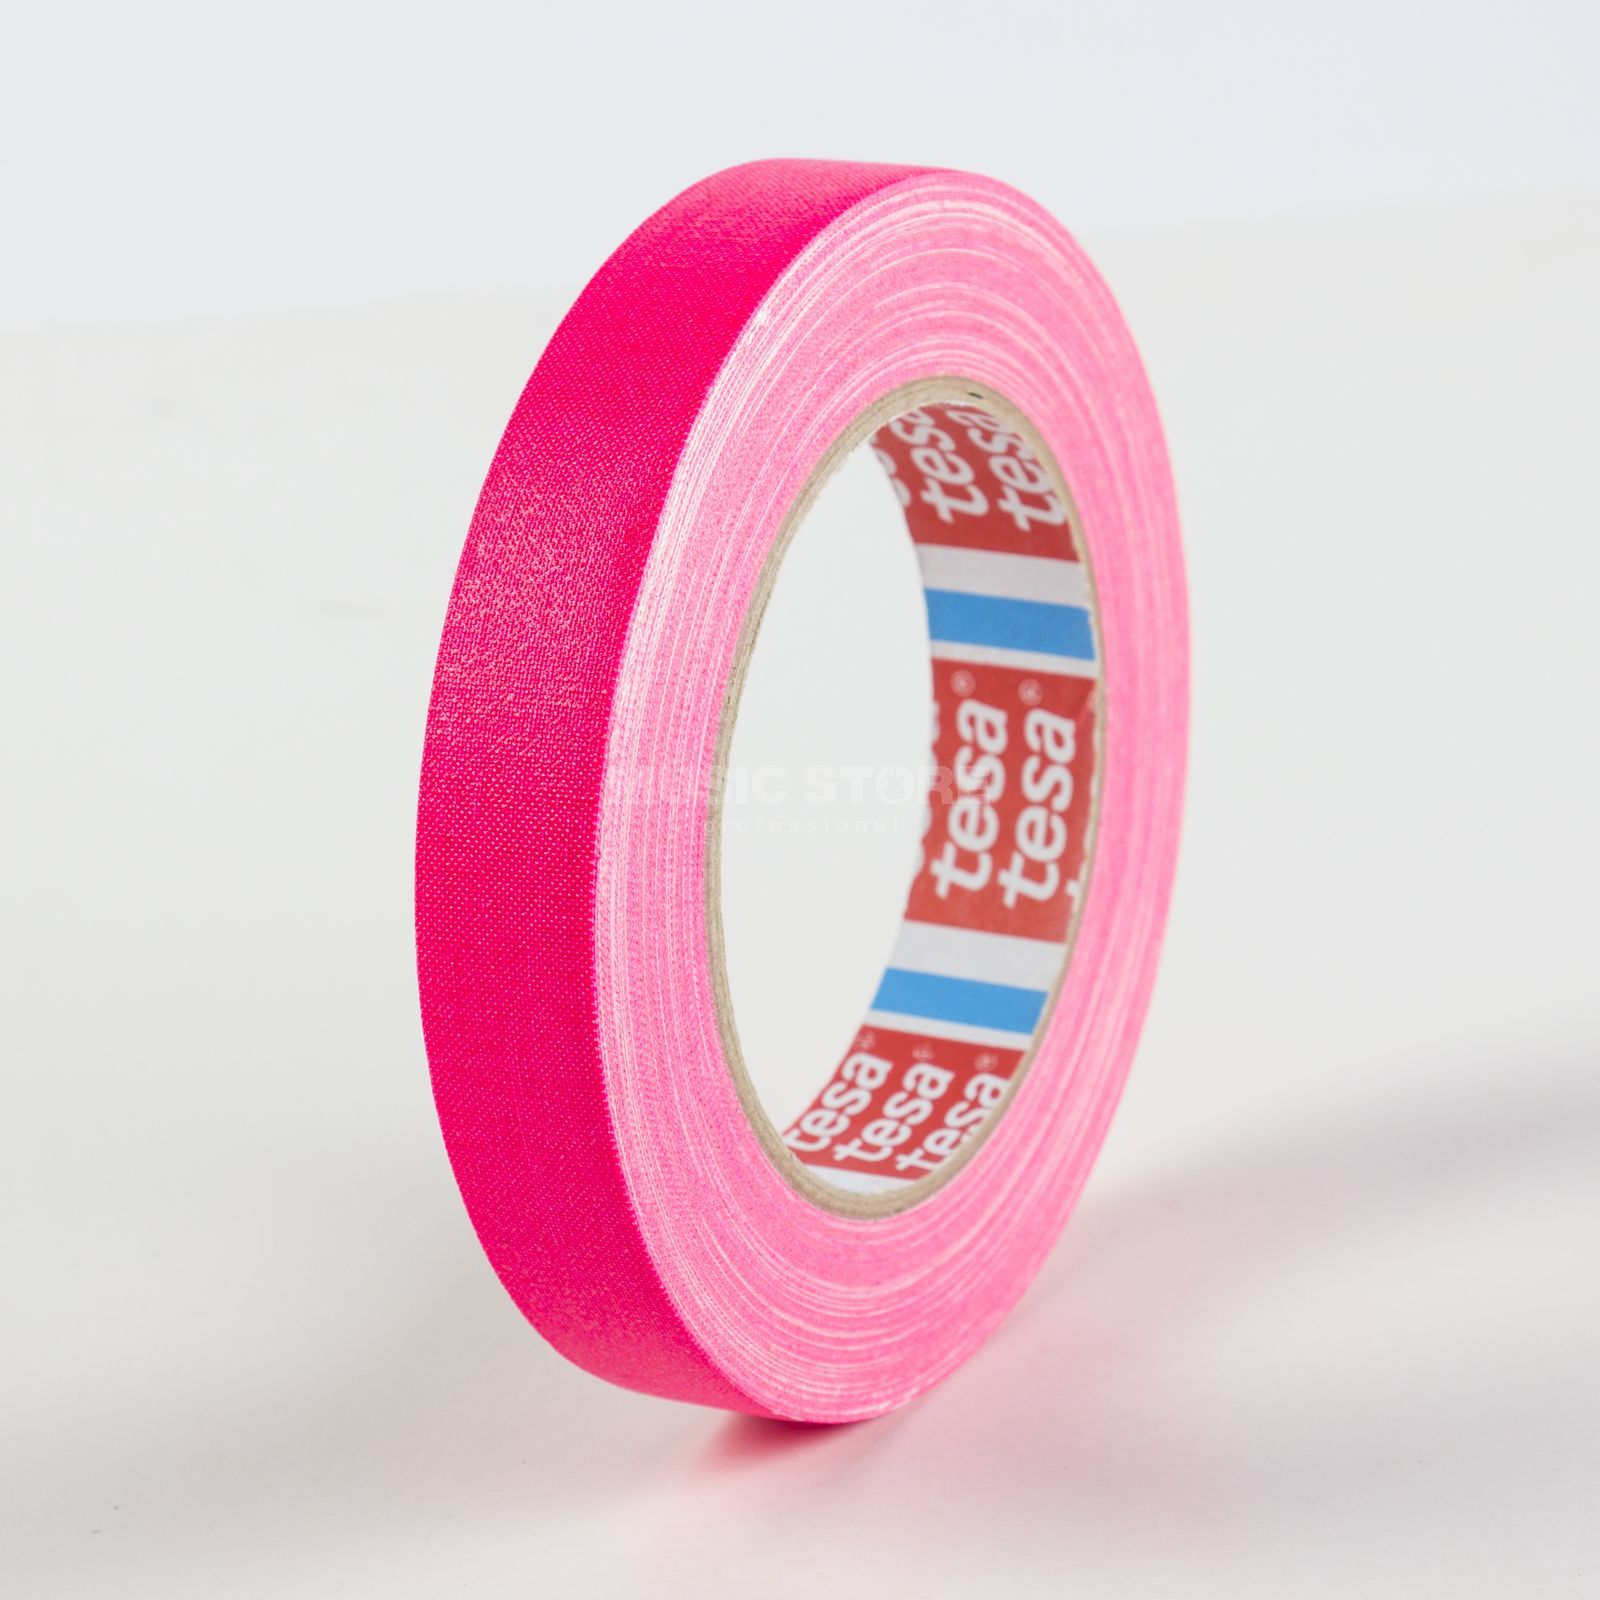 Tesa Highlight Gaffa Tape 4671 neonpink, 25m, 19 mm Produktbild